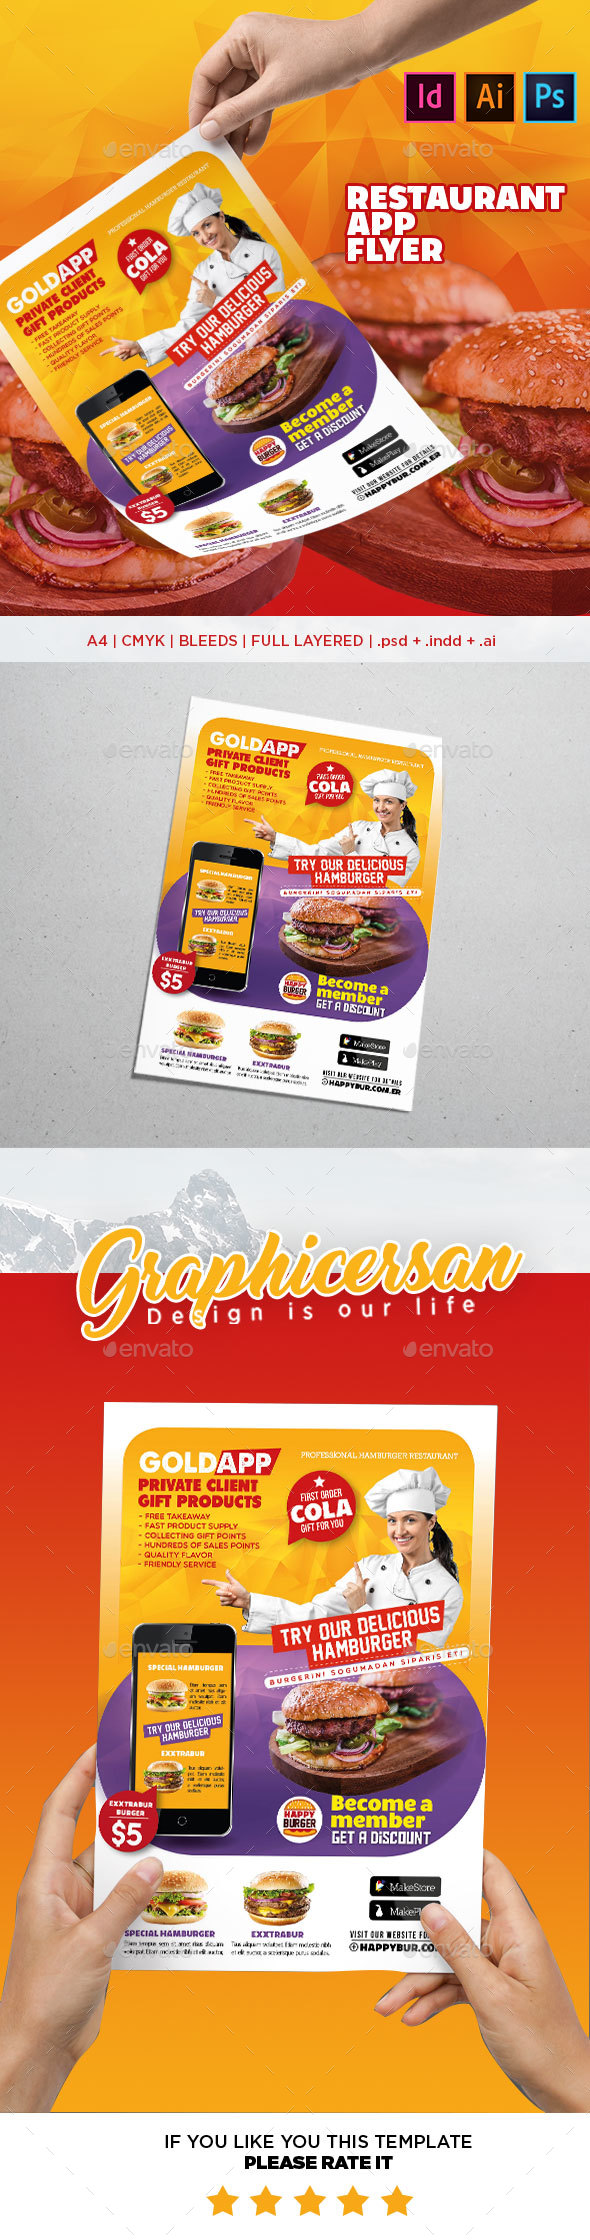 Restaurant App Flyer - Corporate Flyers